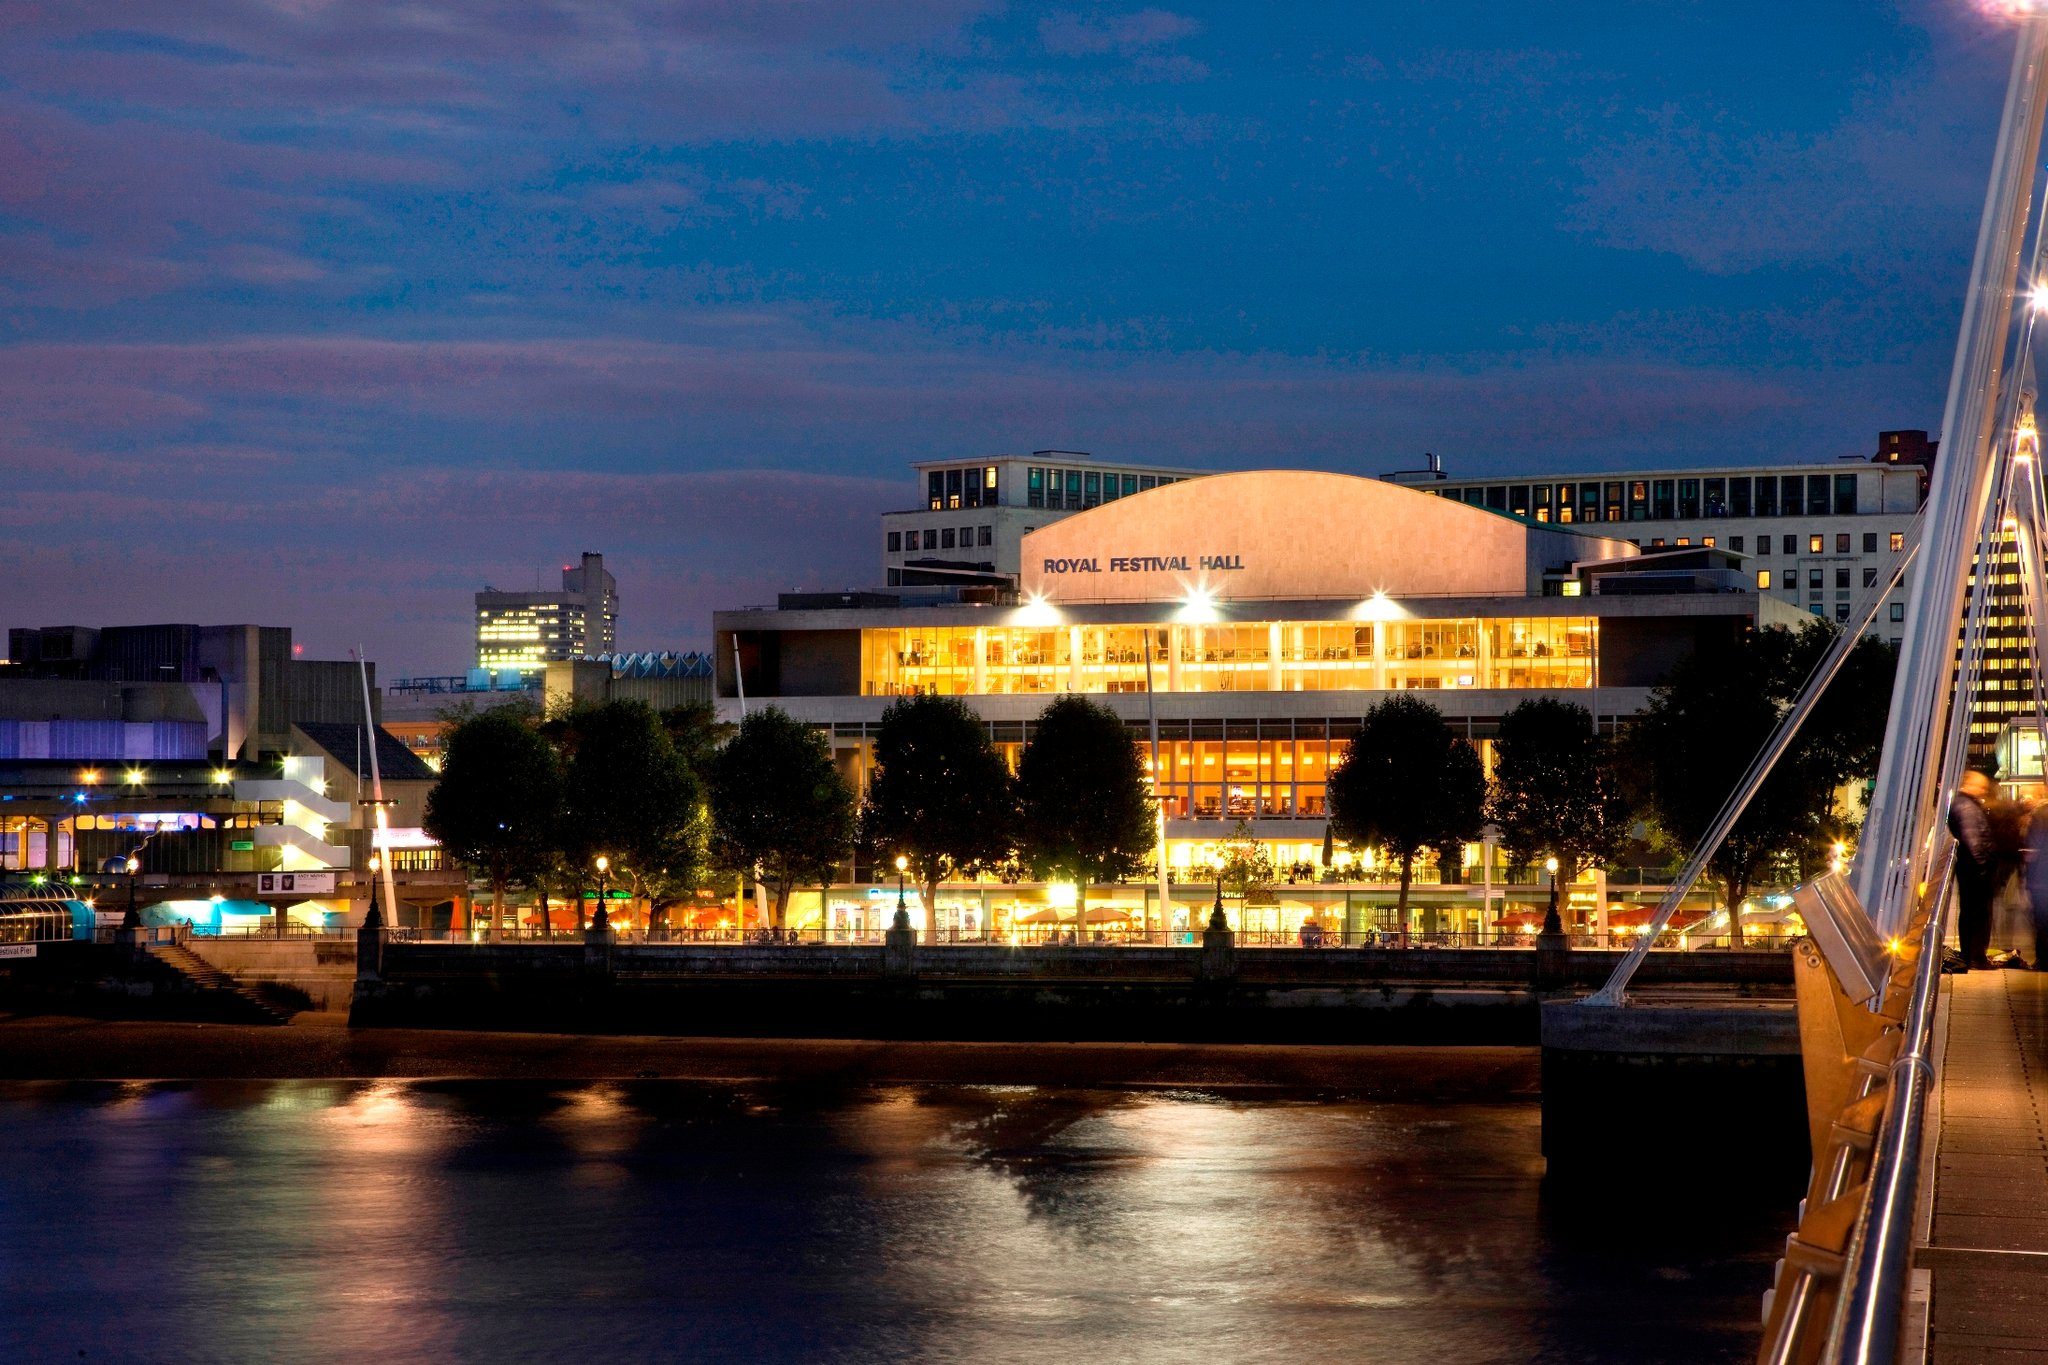 Royal Festival Hall - Photo via graphics8.nytimes.com